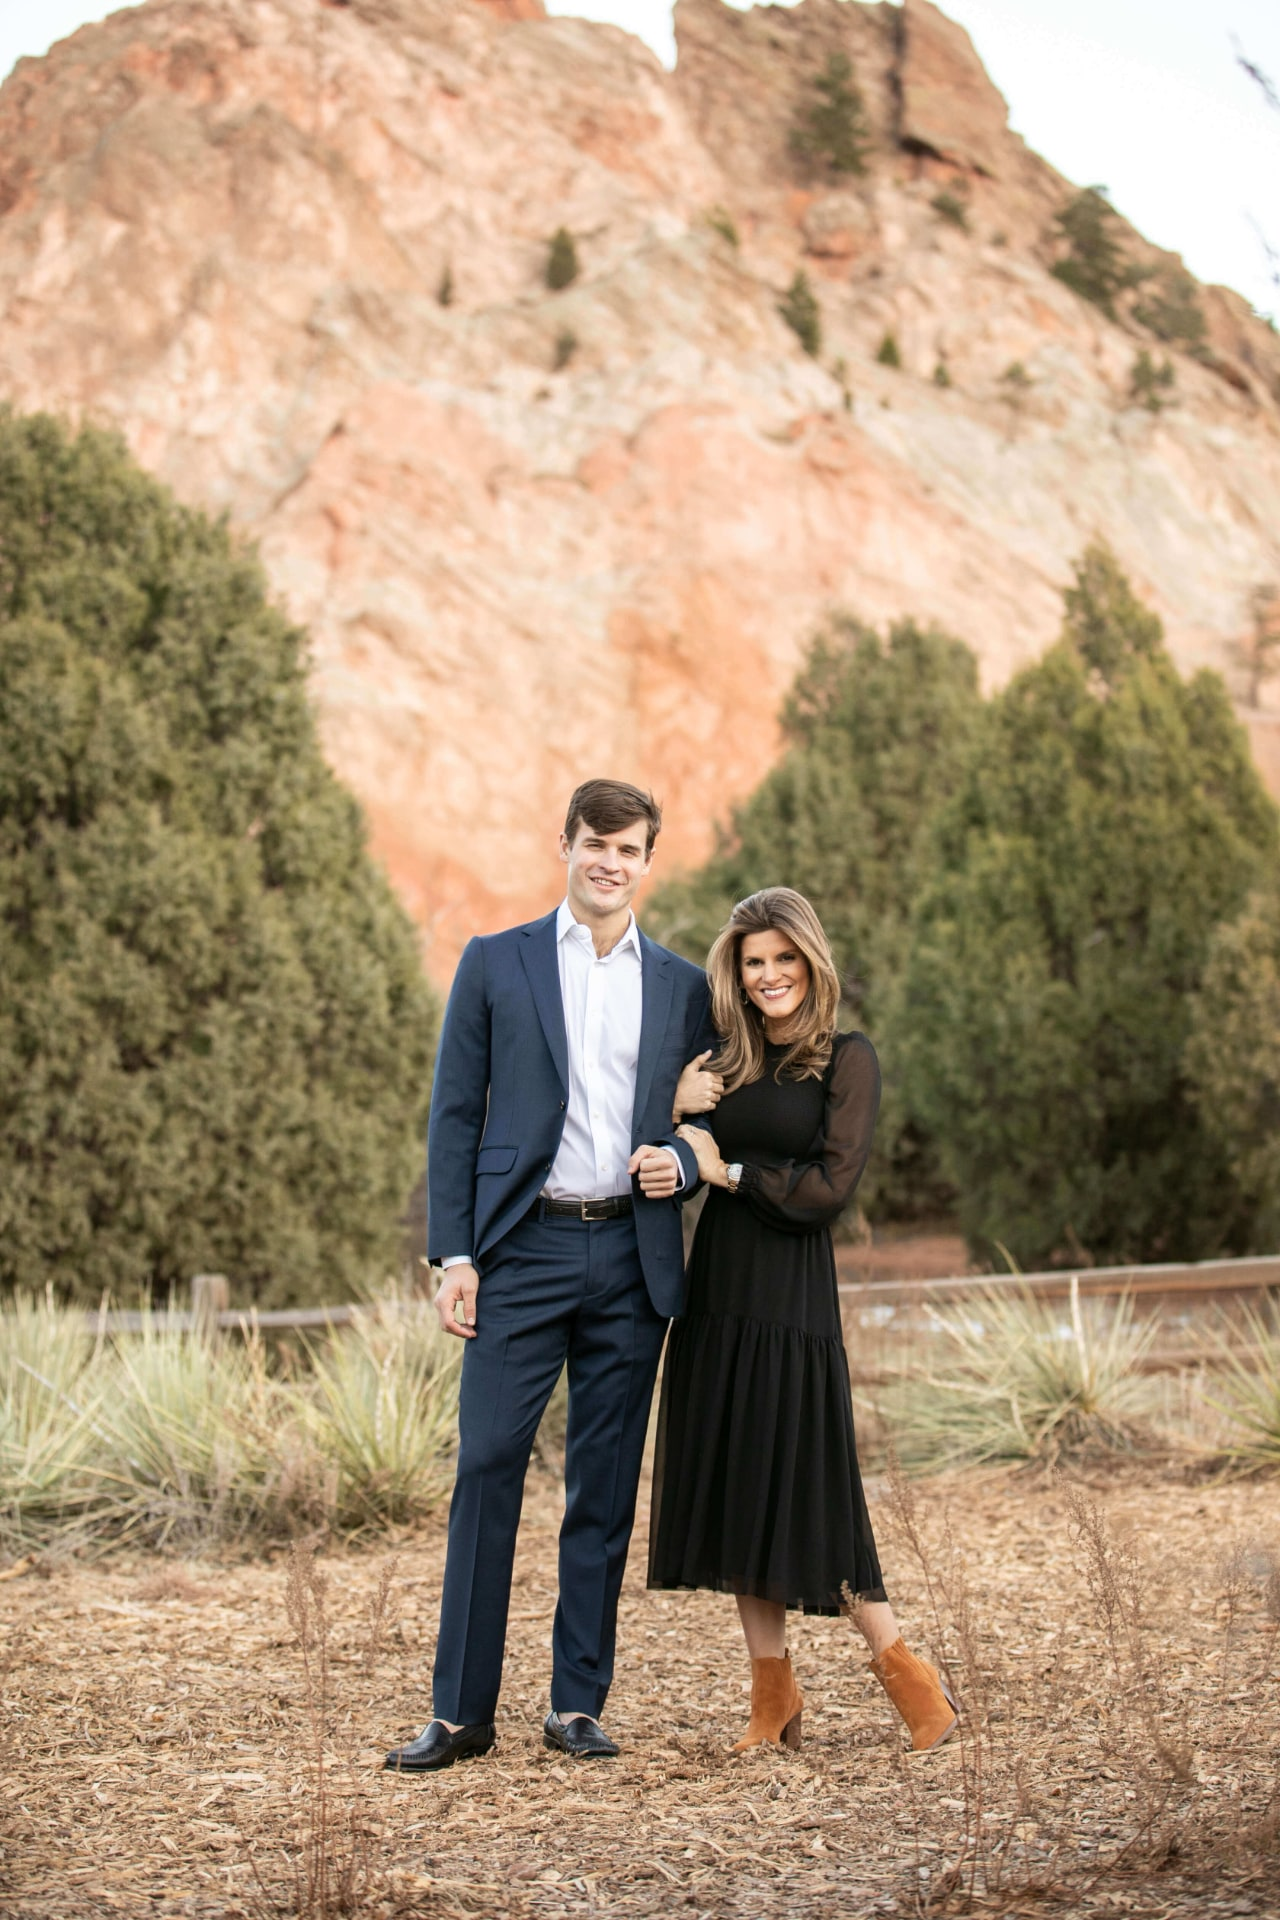 Colorado Engagement Portraits To Brighton Your Day John